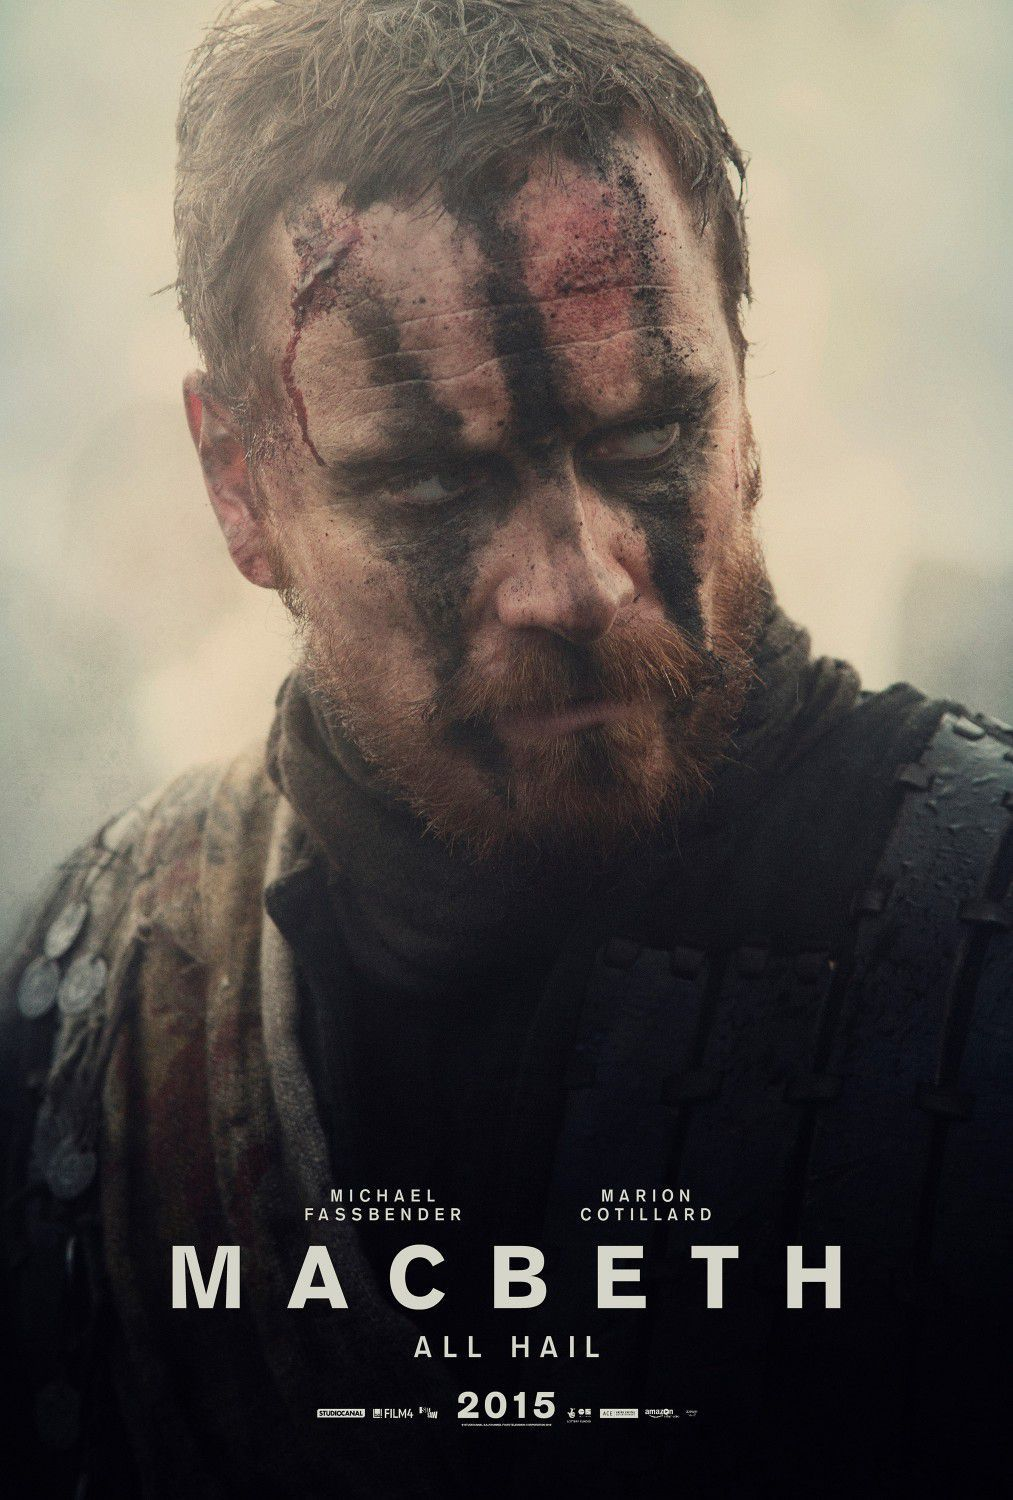 Macbeth (2015) - Michael Fassbender - film poster